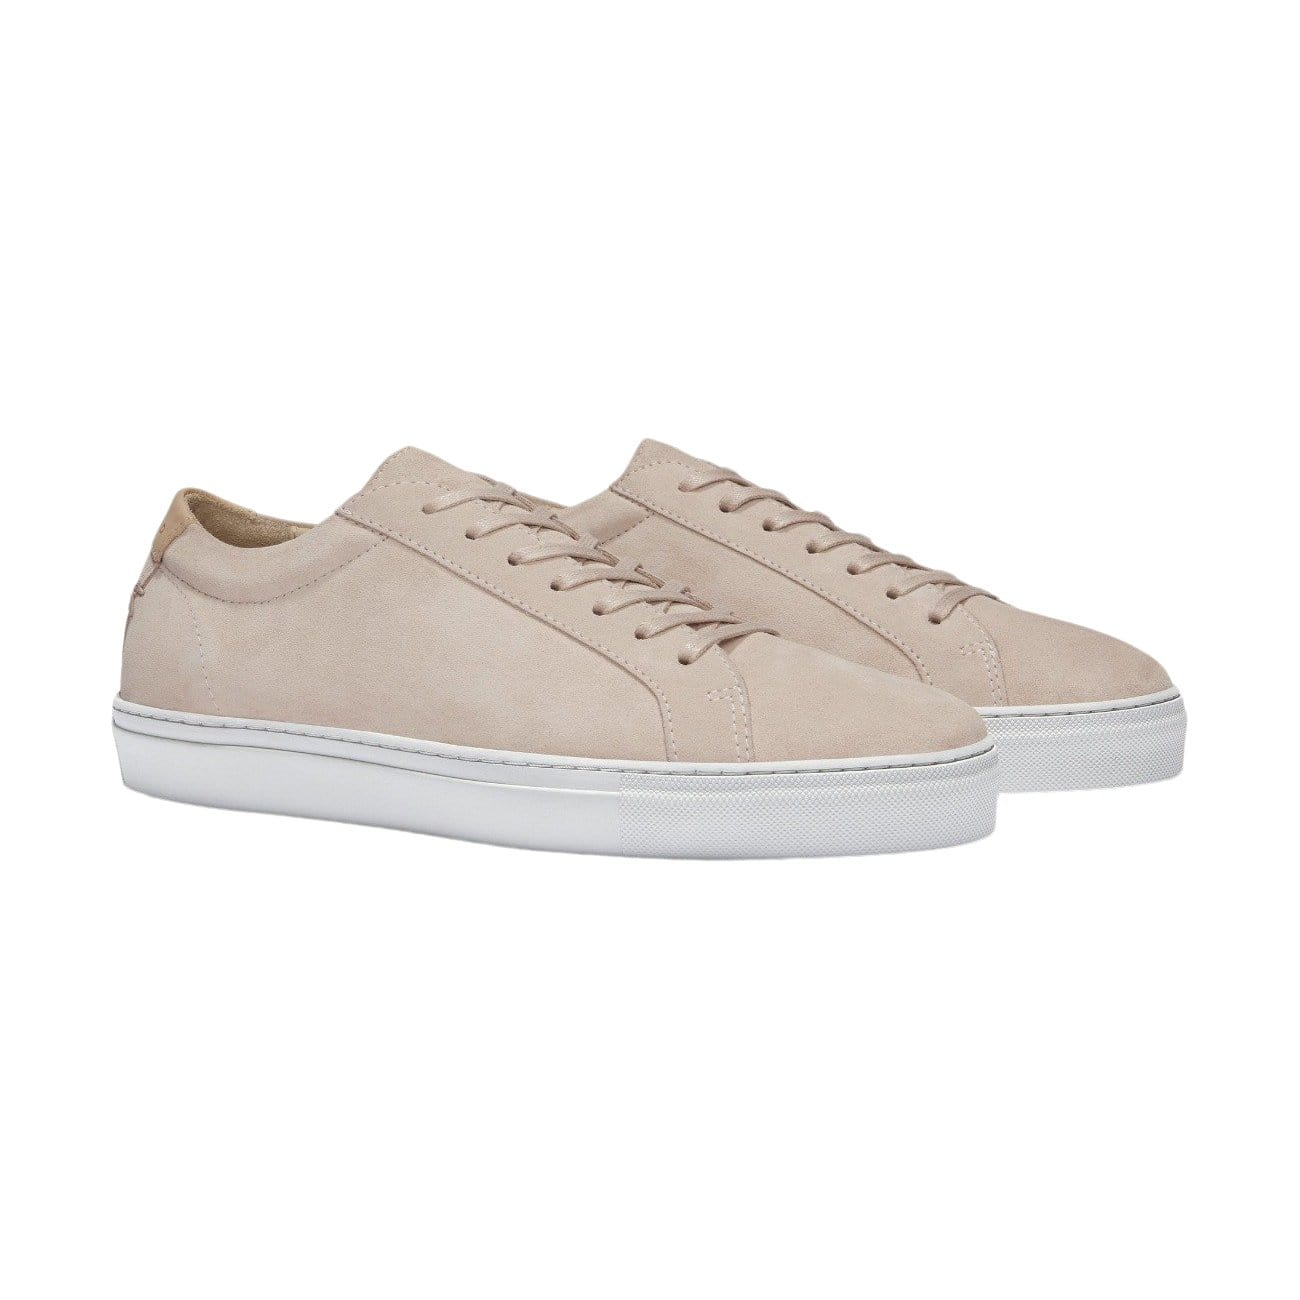 Women's SERIES 1 Blush Suede Sneaker